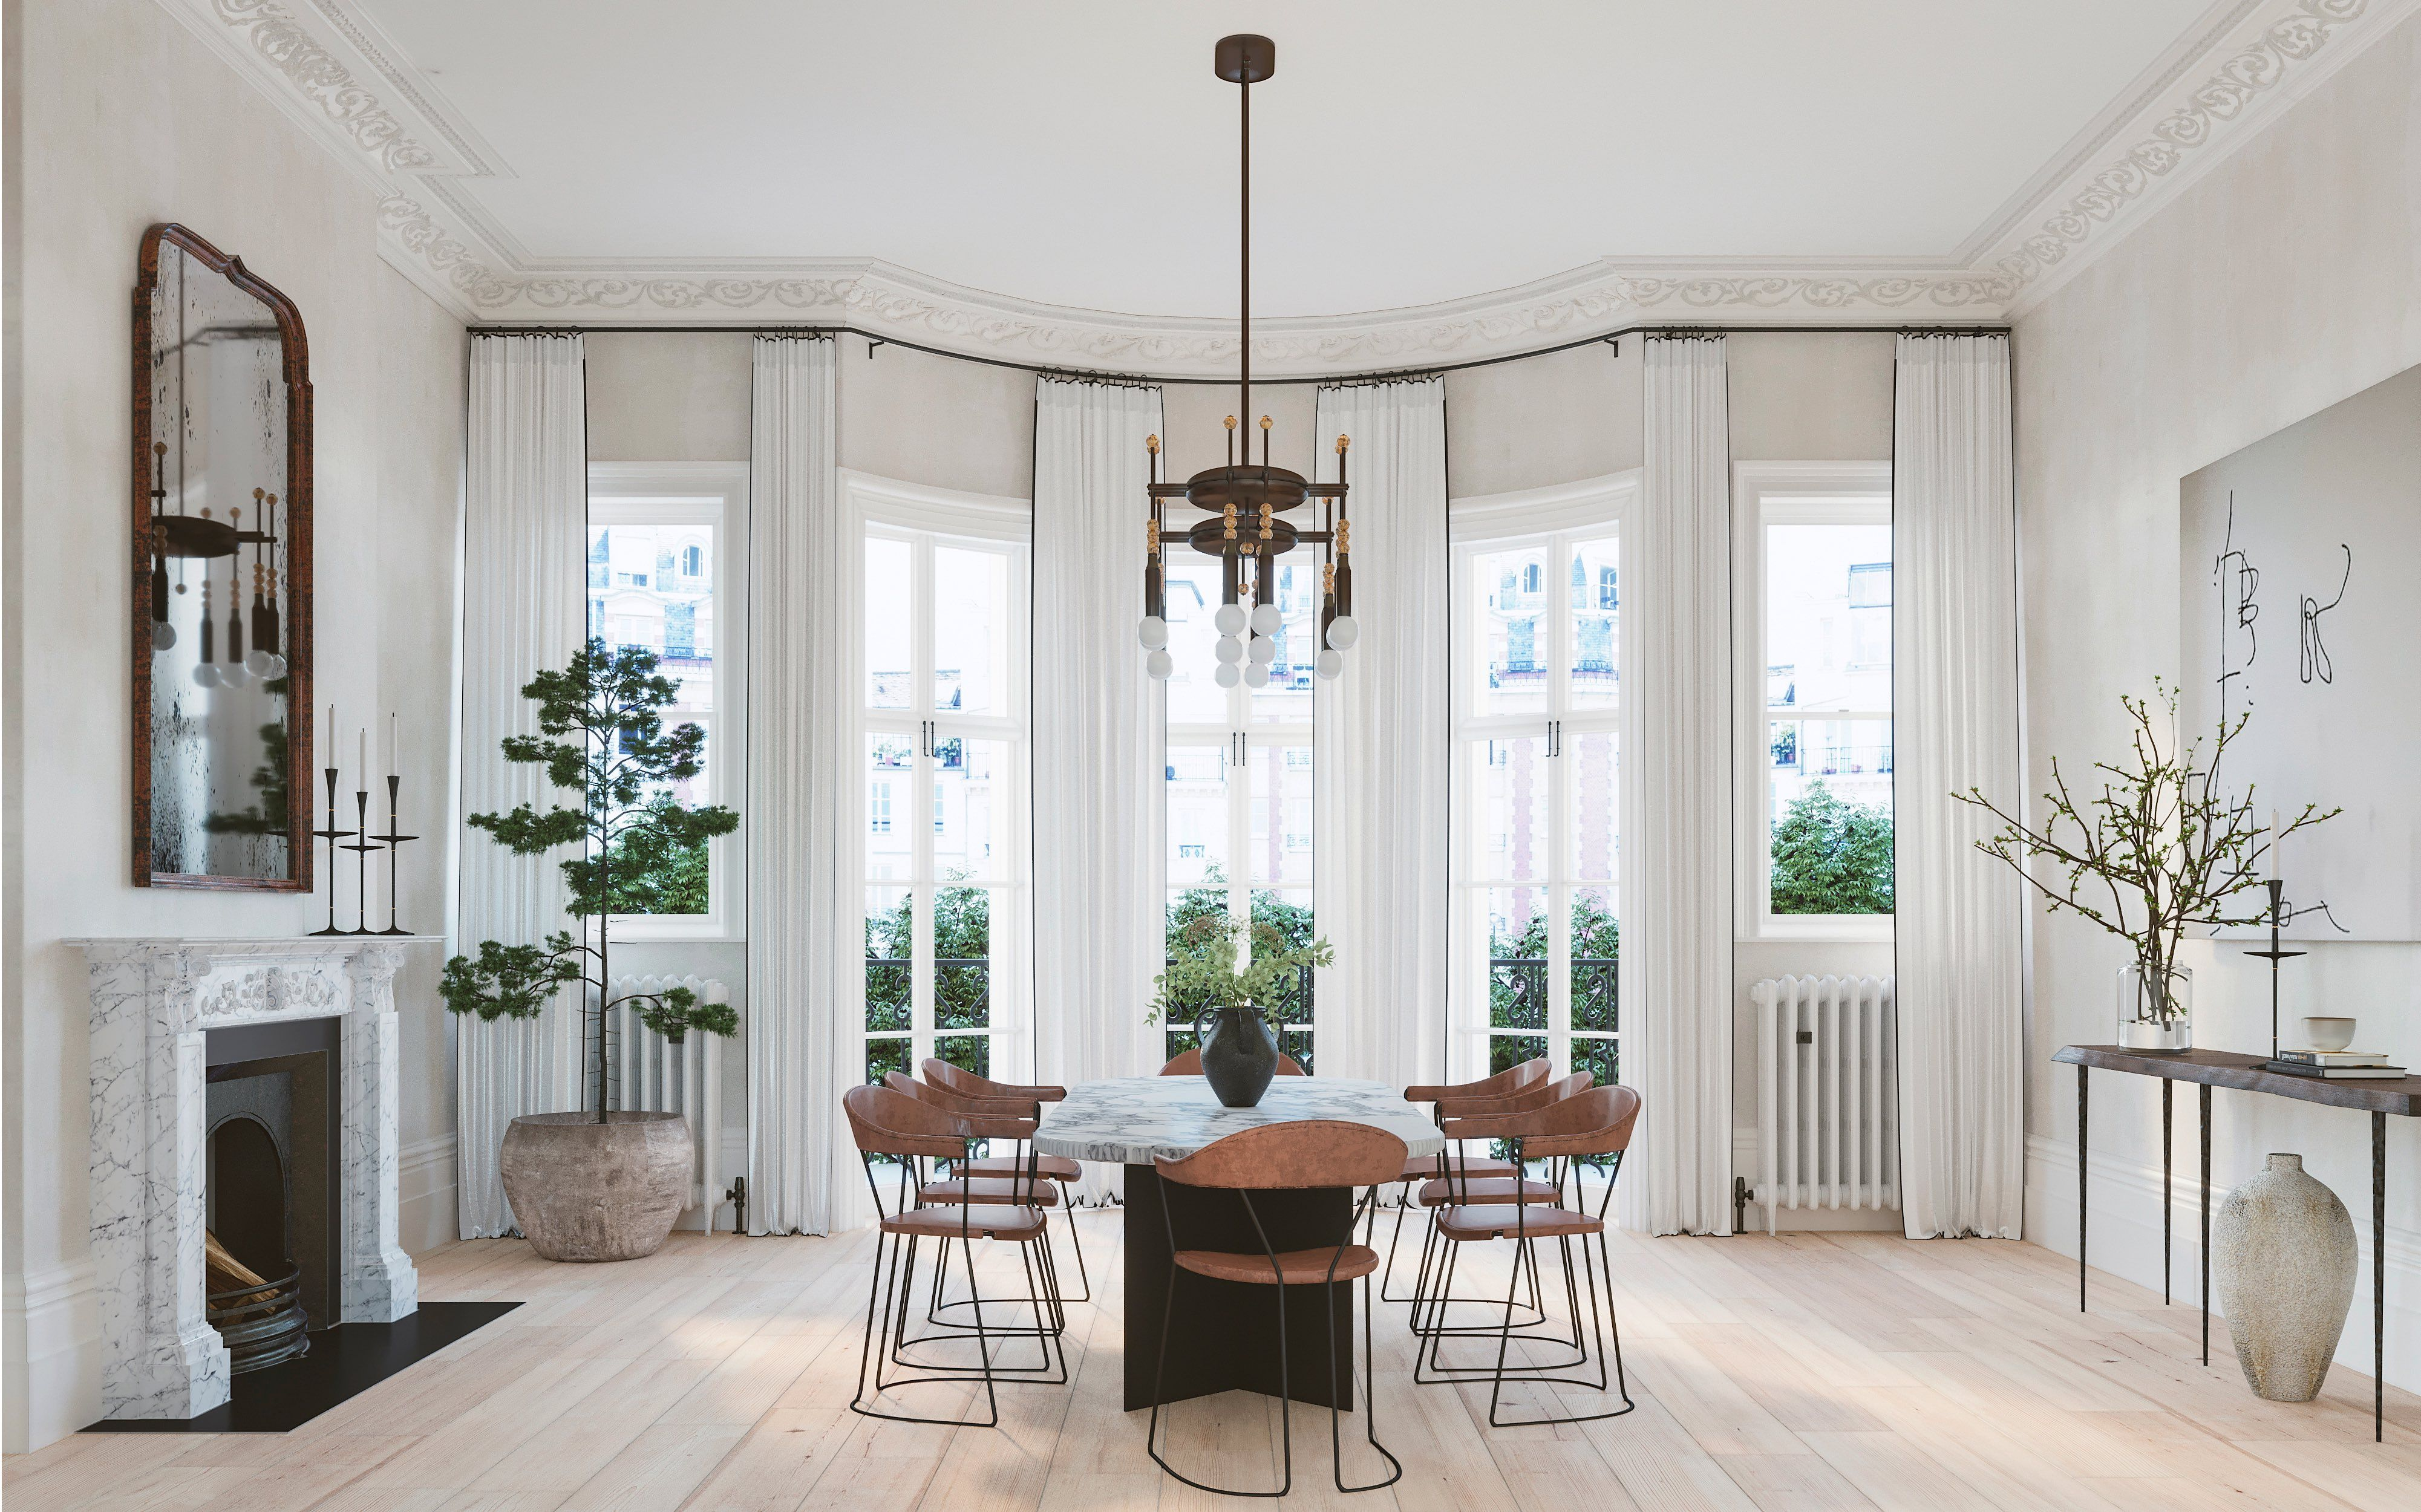 10 Of The Best British Interior Designers To Know Right Now